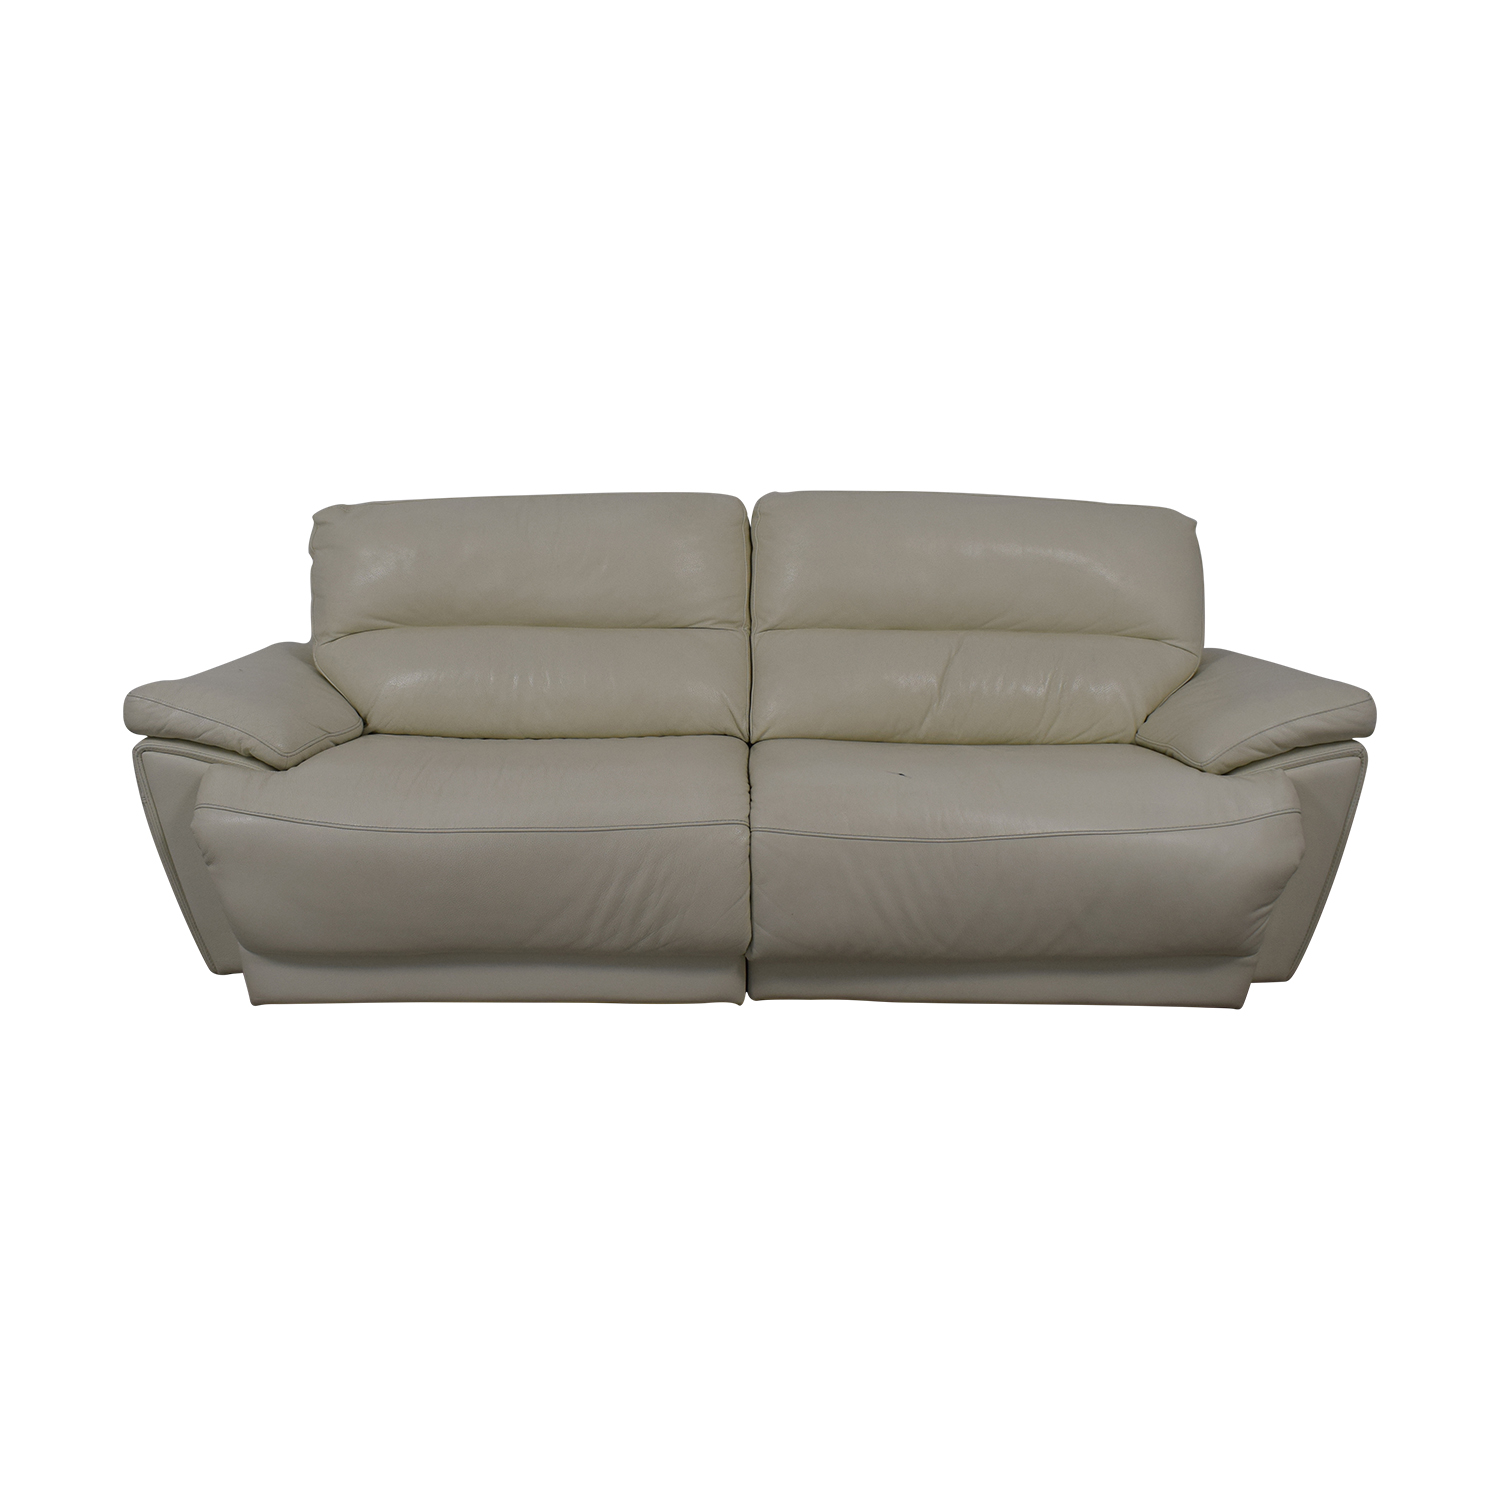 Chateau Dax Furniture Reviews: Chateau D'Ax Chateau D'Ax Modern Sofa / Sofas